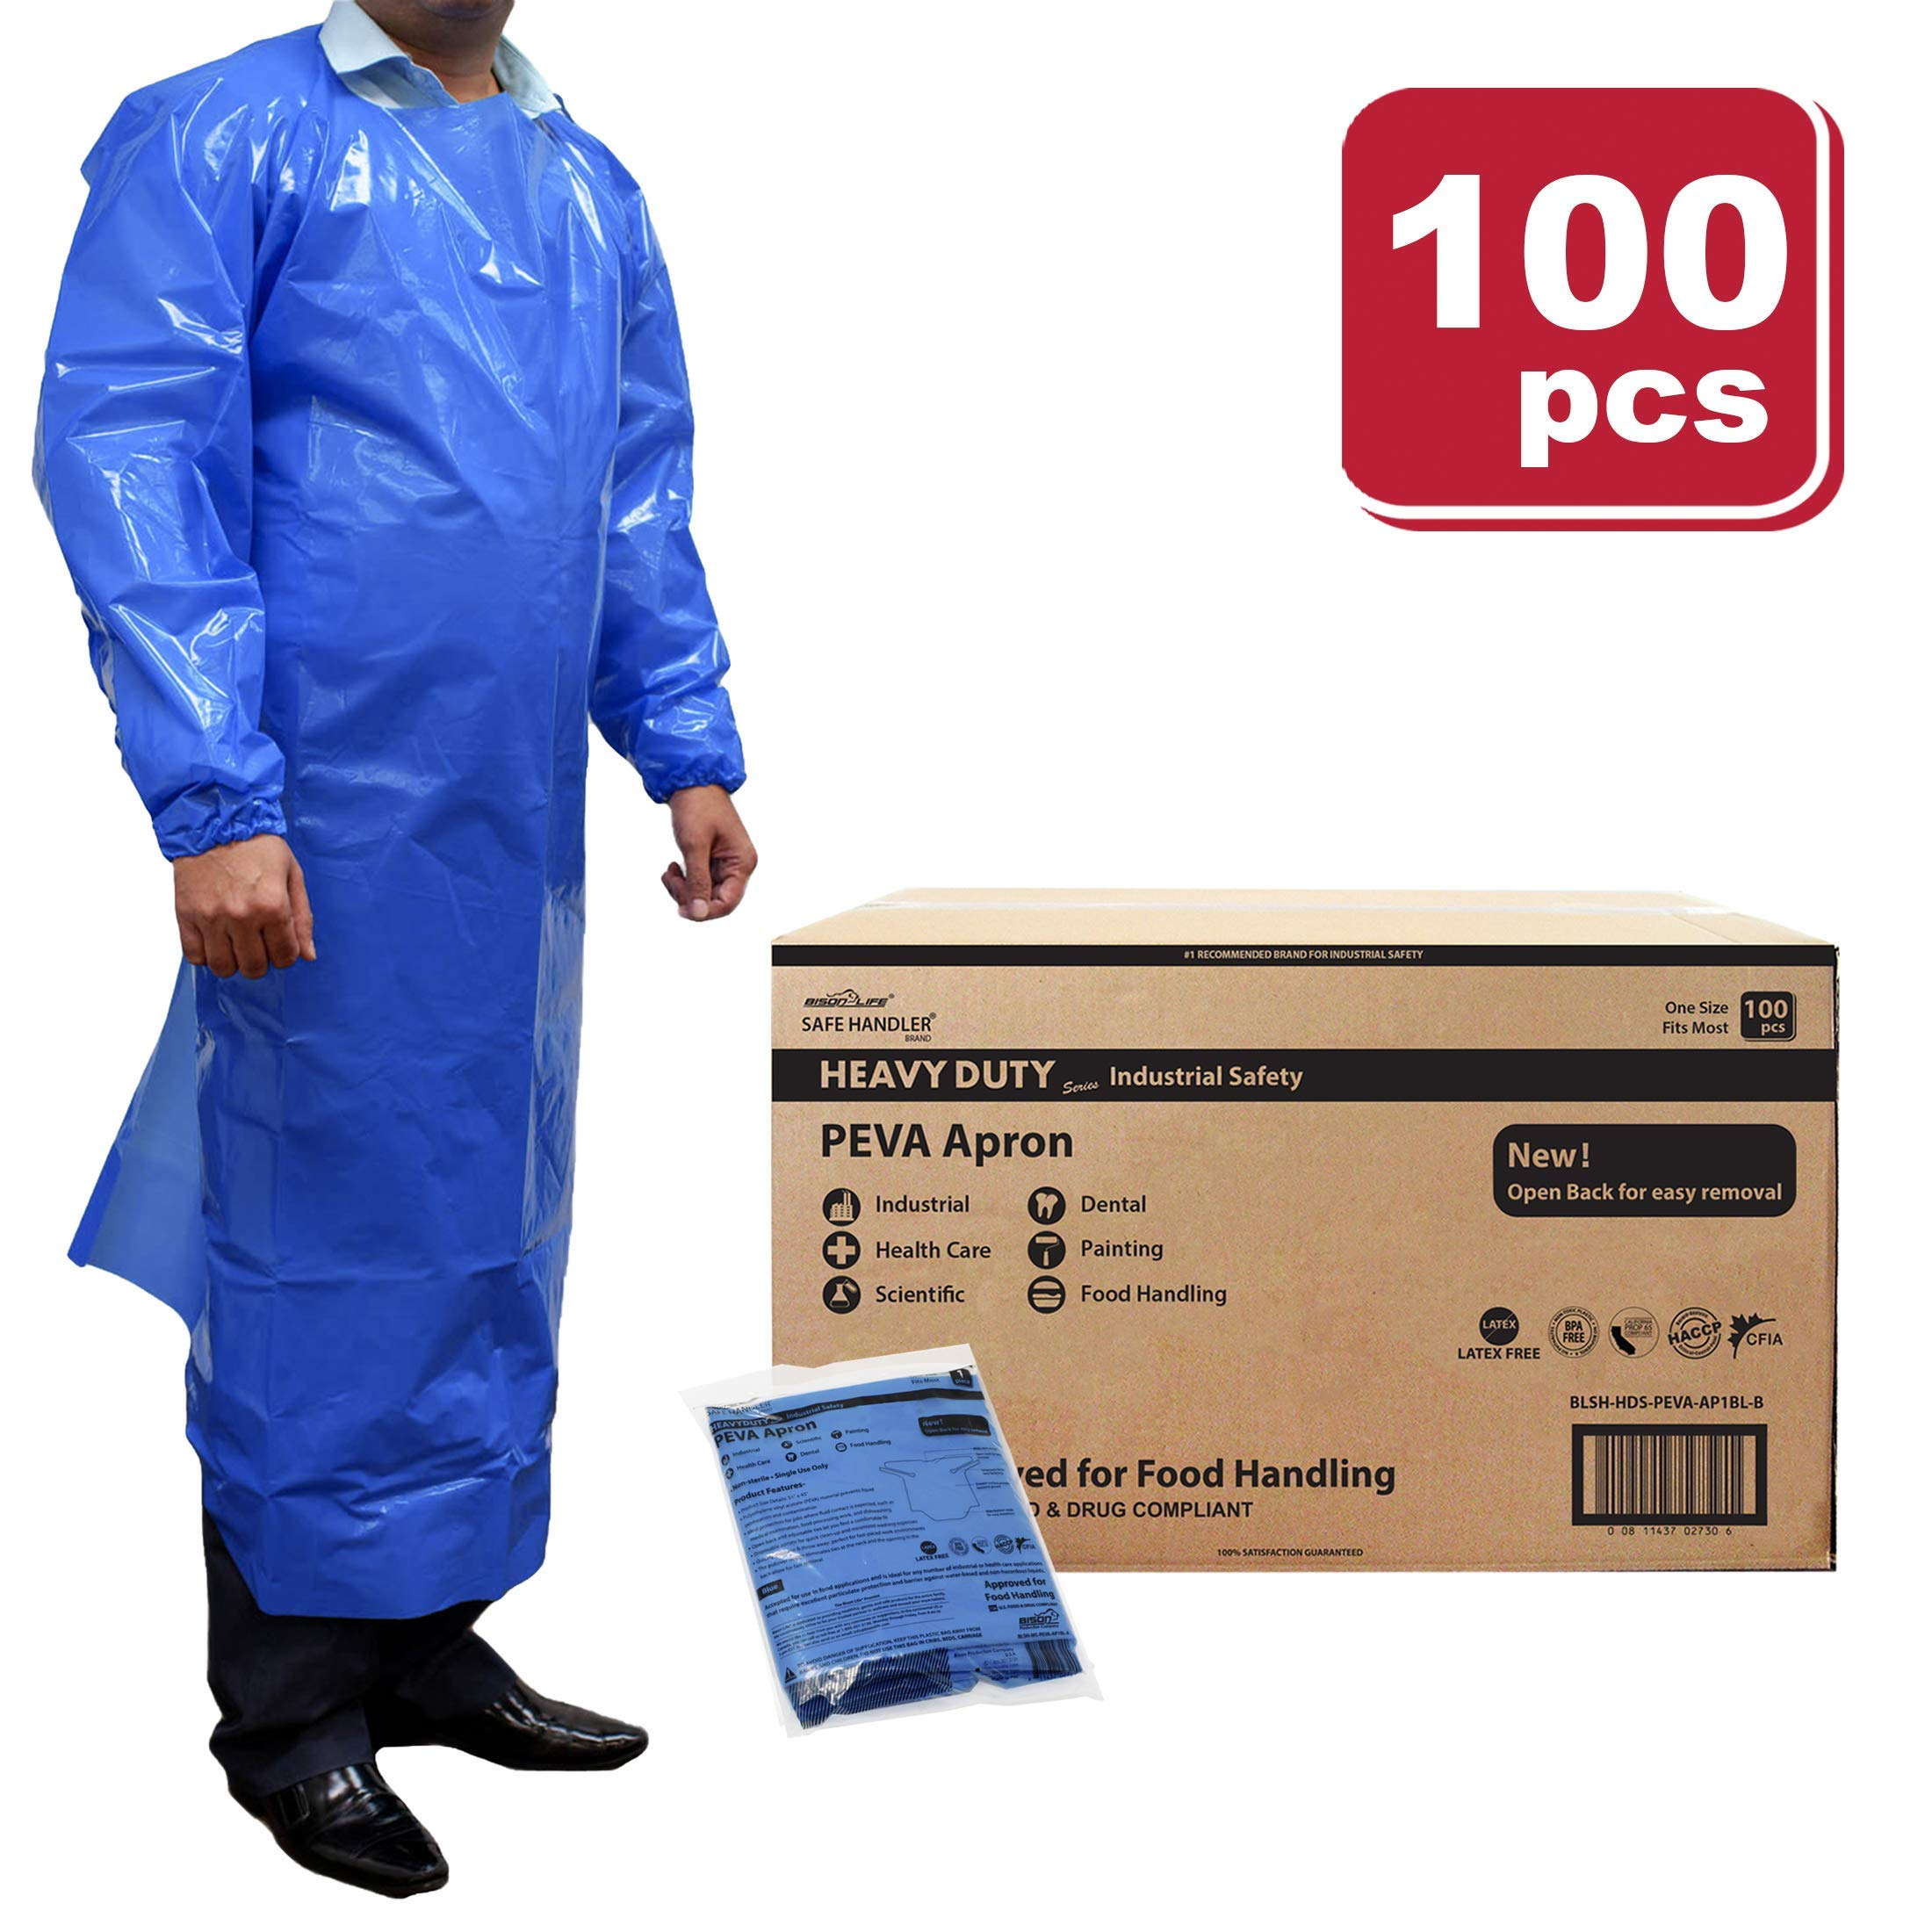 SAFE HANDLER Peva Apron, Polyethylene Vinyl Acetate | Open Back for Easy Removal, Waterproof and Disposable, BLUE (Case of 100)